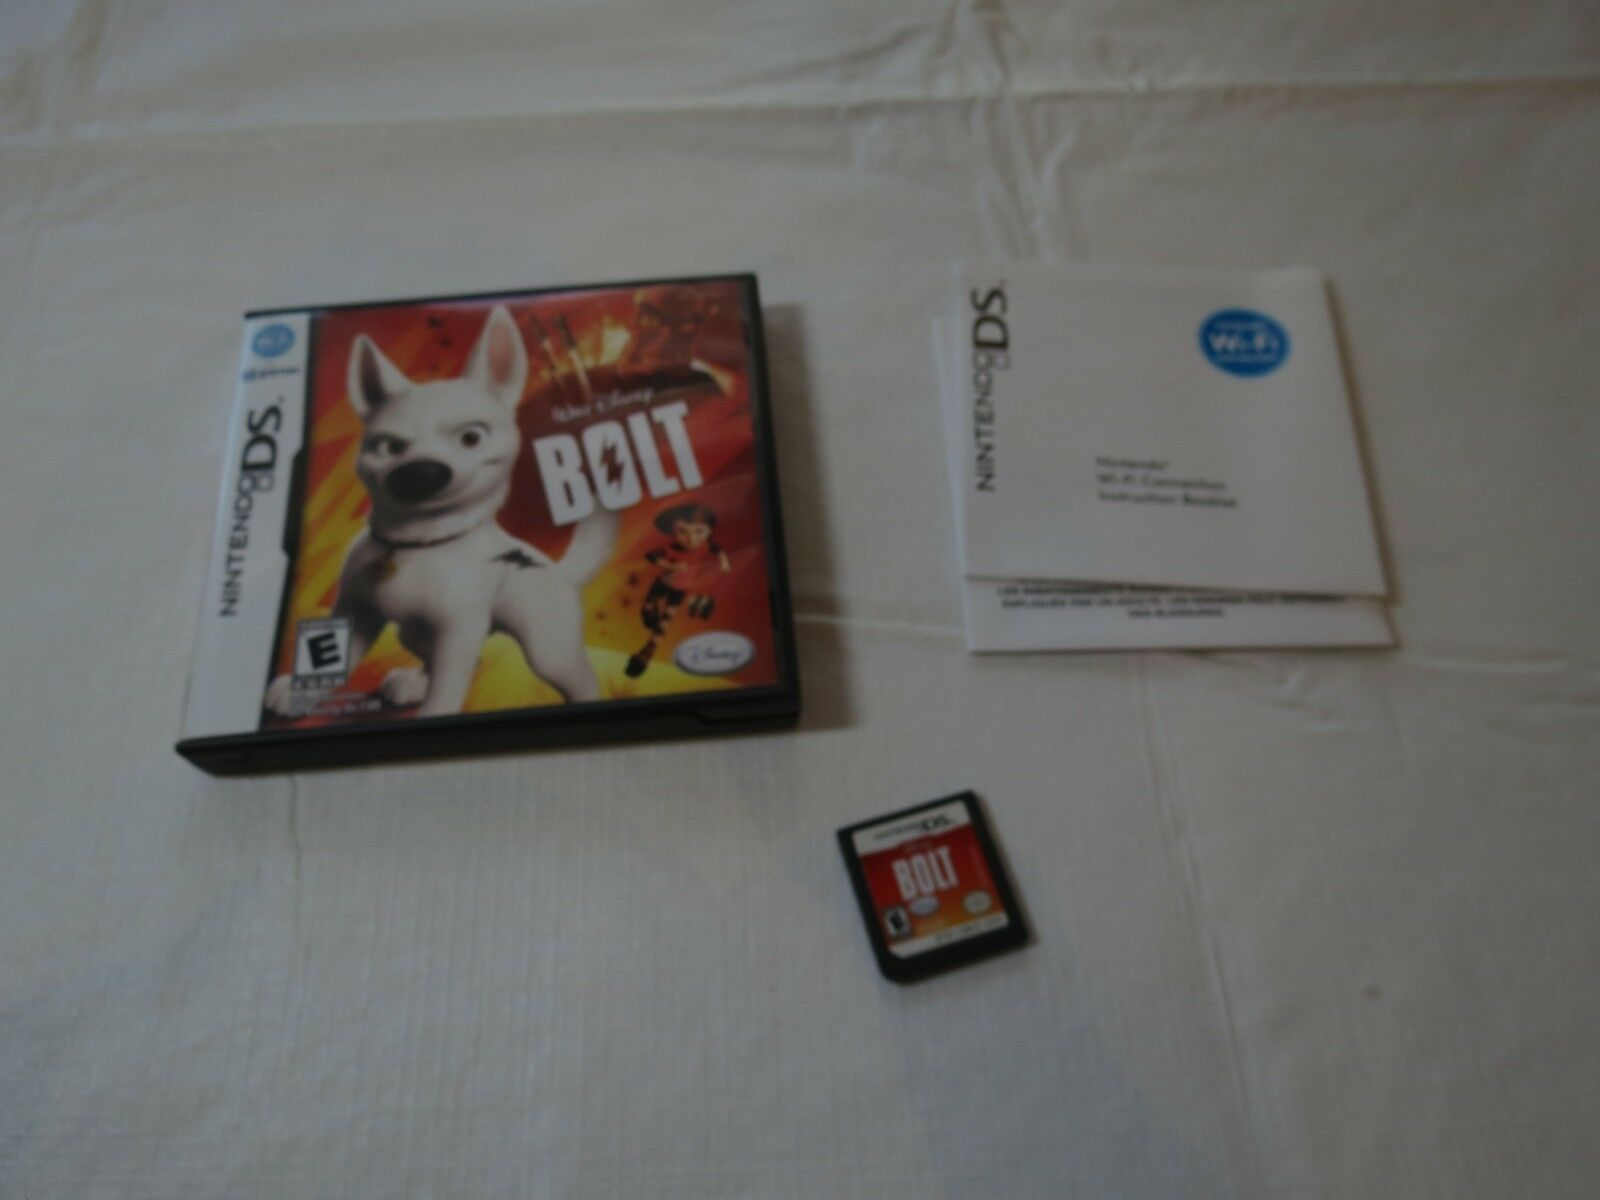 Bolt (Nintendo DS, 2008) Walt Disney Game boy everyone pictures gamer